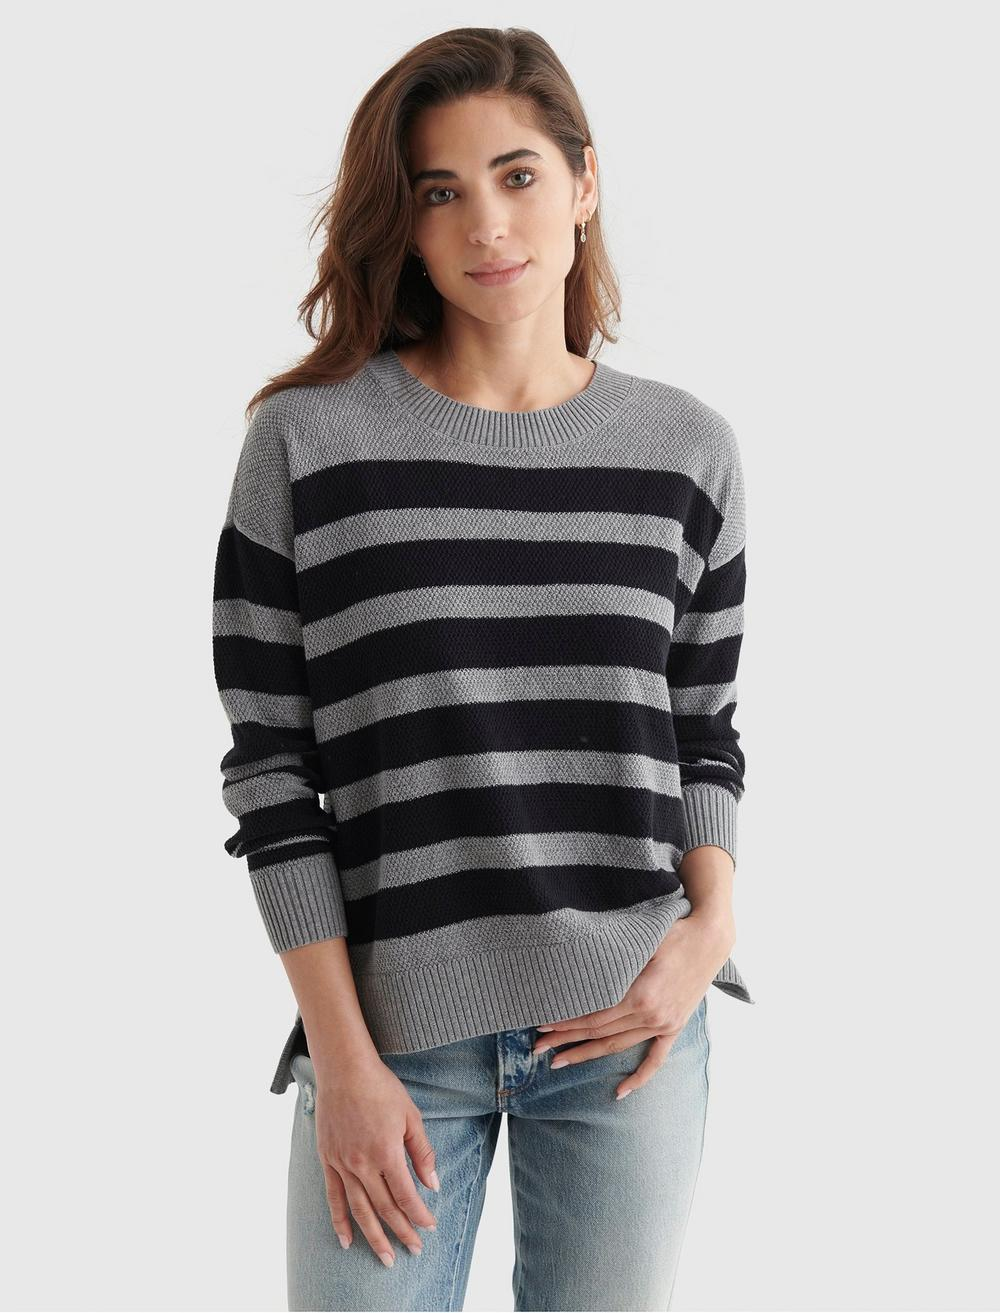 TEXTURED KNIT SWEATER, image 1